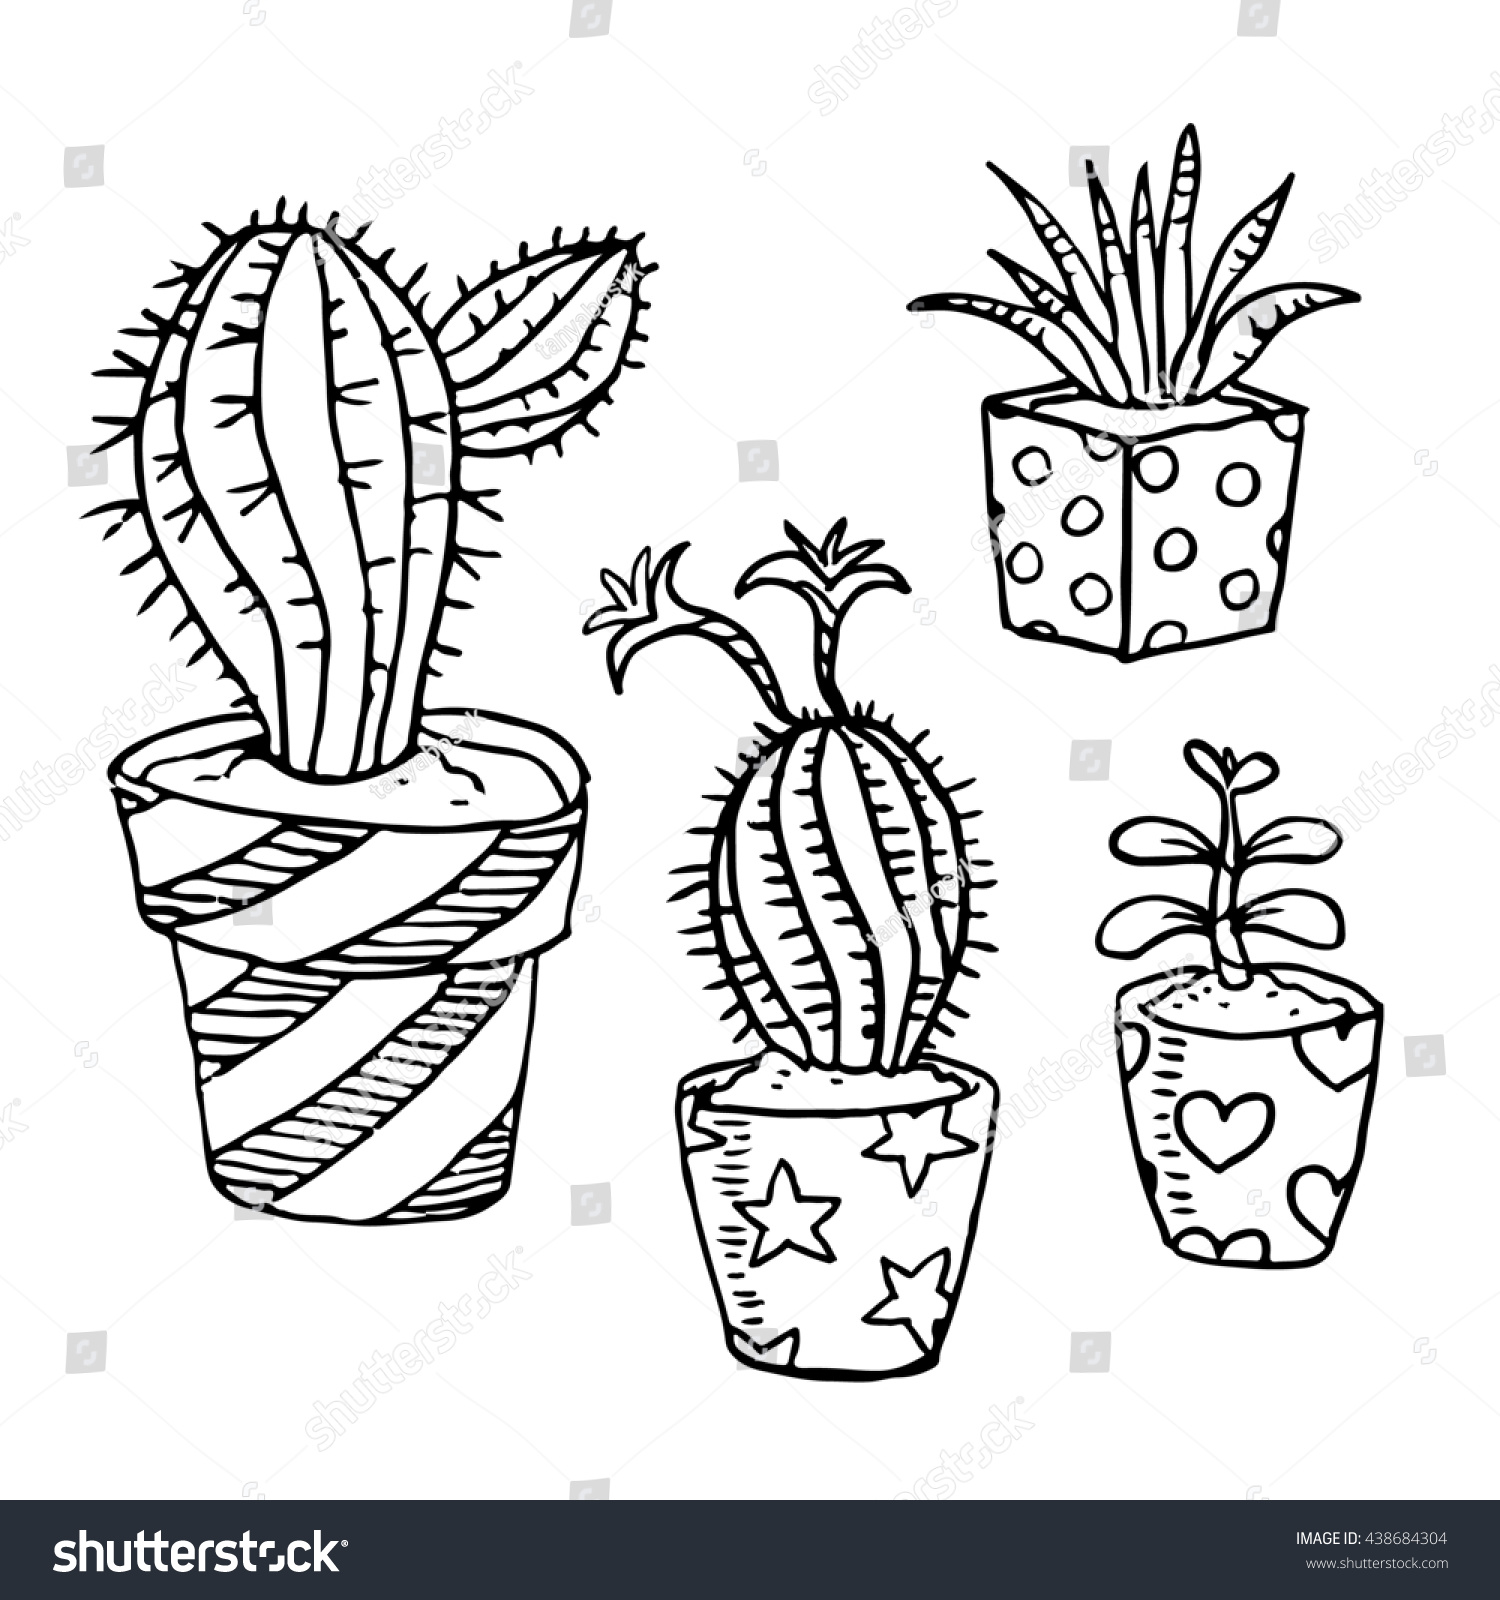 Illustration Cactus Succulent Outline Drawing Collection Stock Illustration 438684304